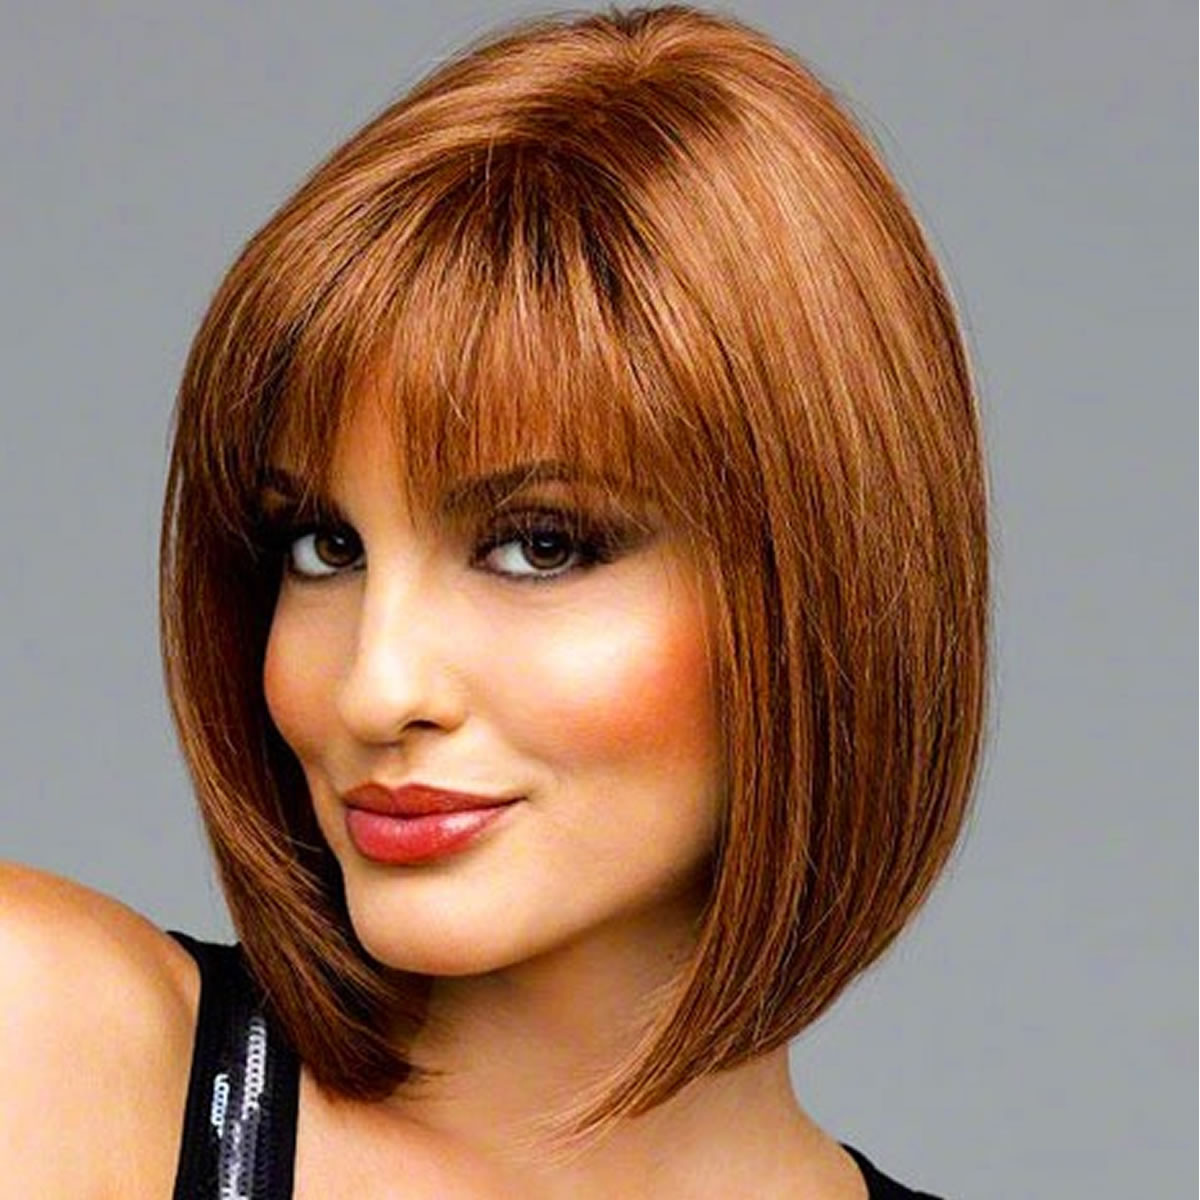 Best ideas about Short Haircuts With Bangs 2019 . Save or Pin The Best 30 Short Bob Haircuts – 2018 Short Hairstyles for Now.